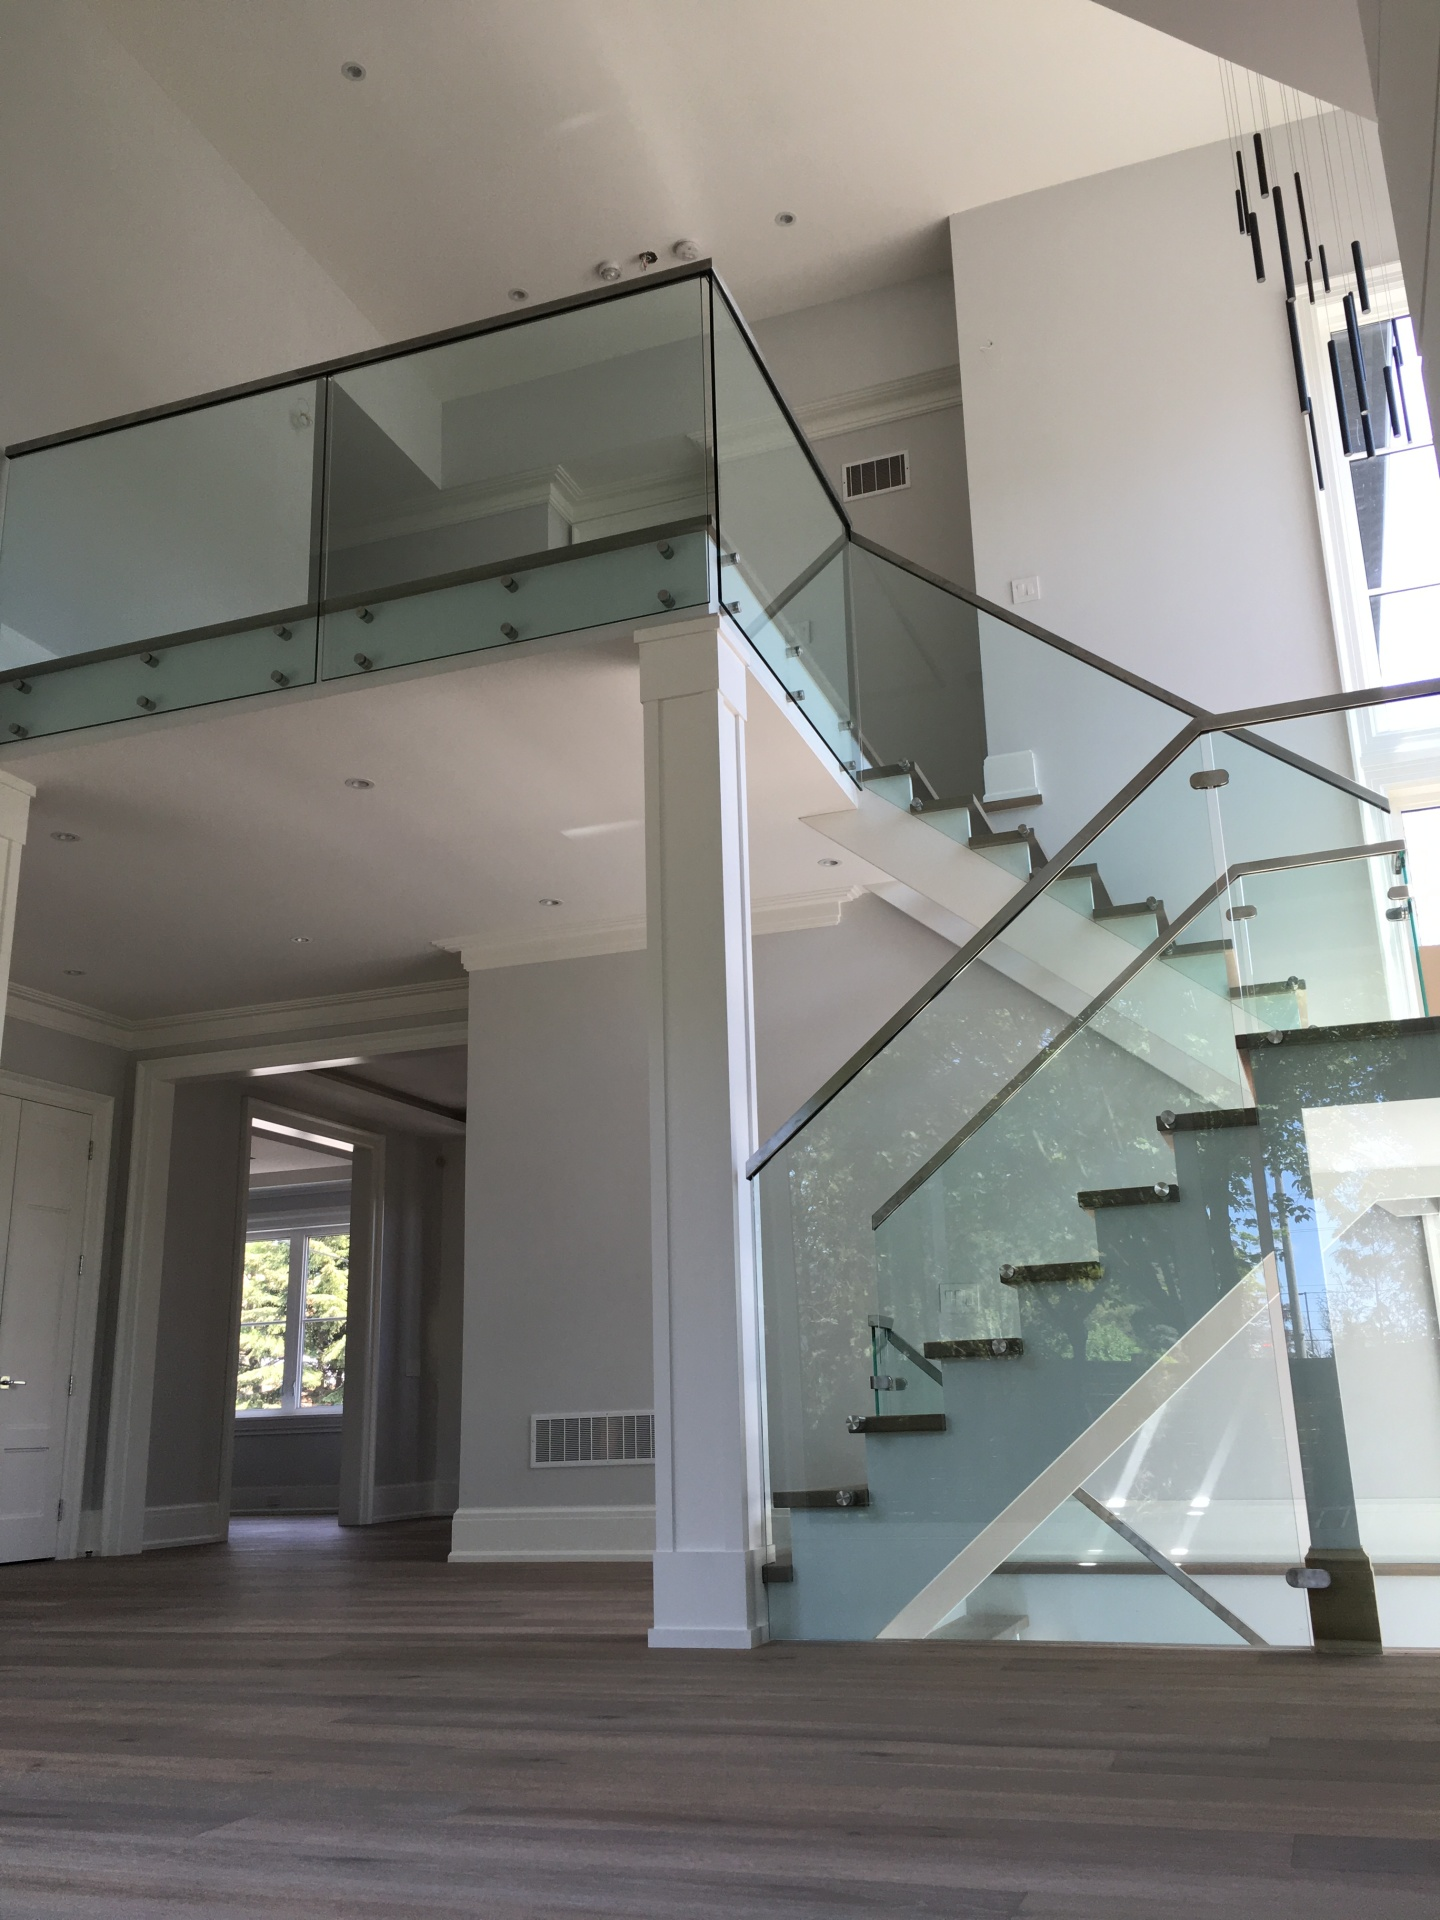 Glass guards